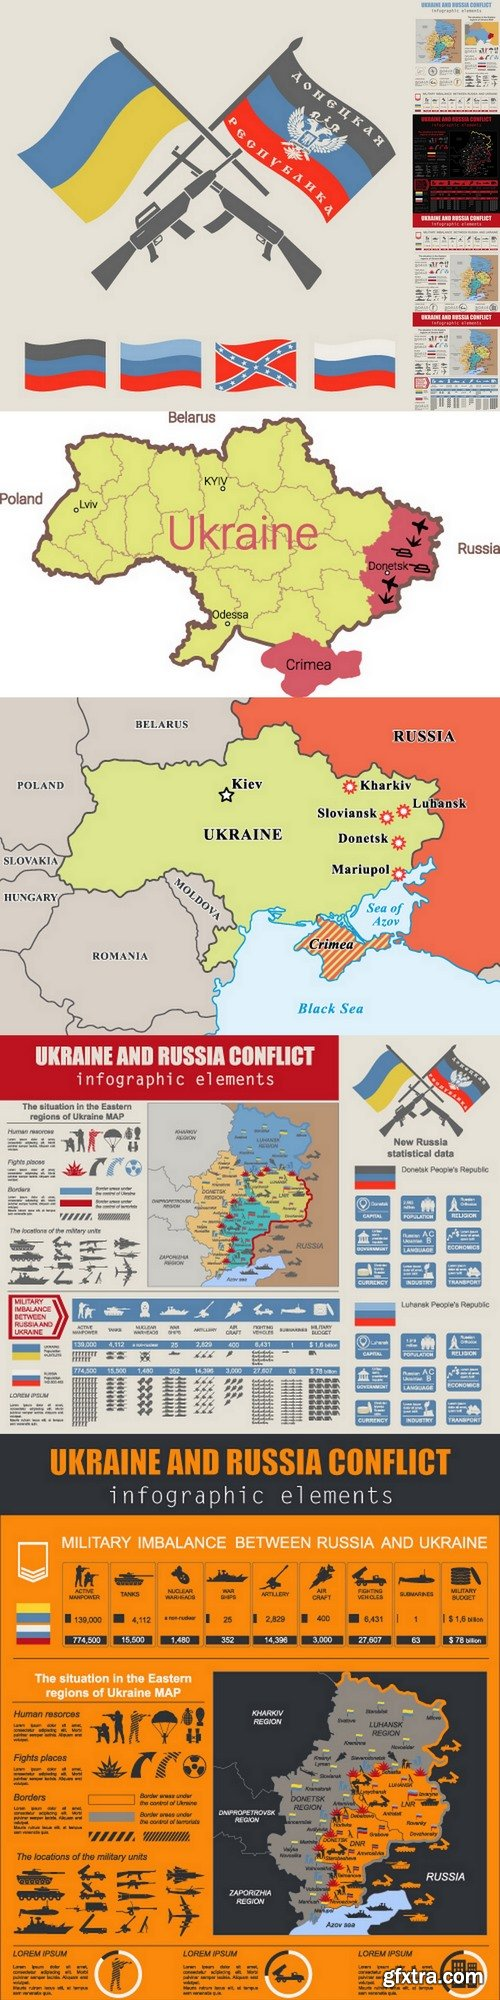 Ukraine and Russia military conflict